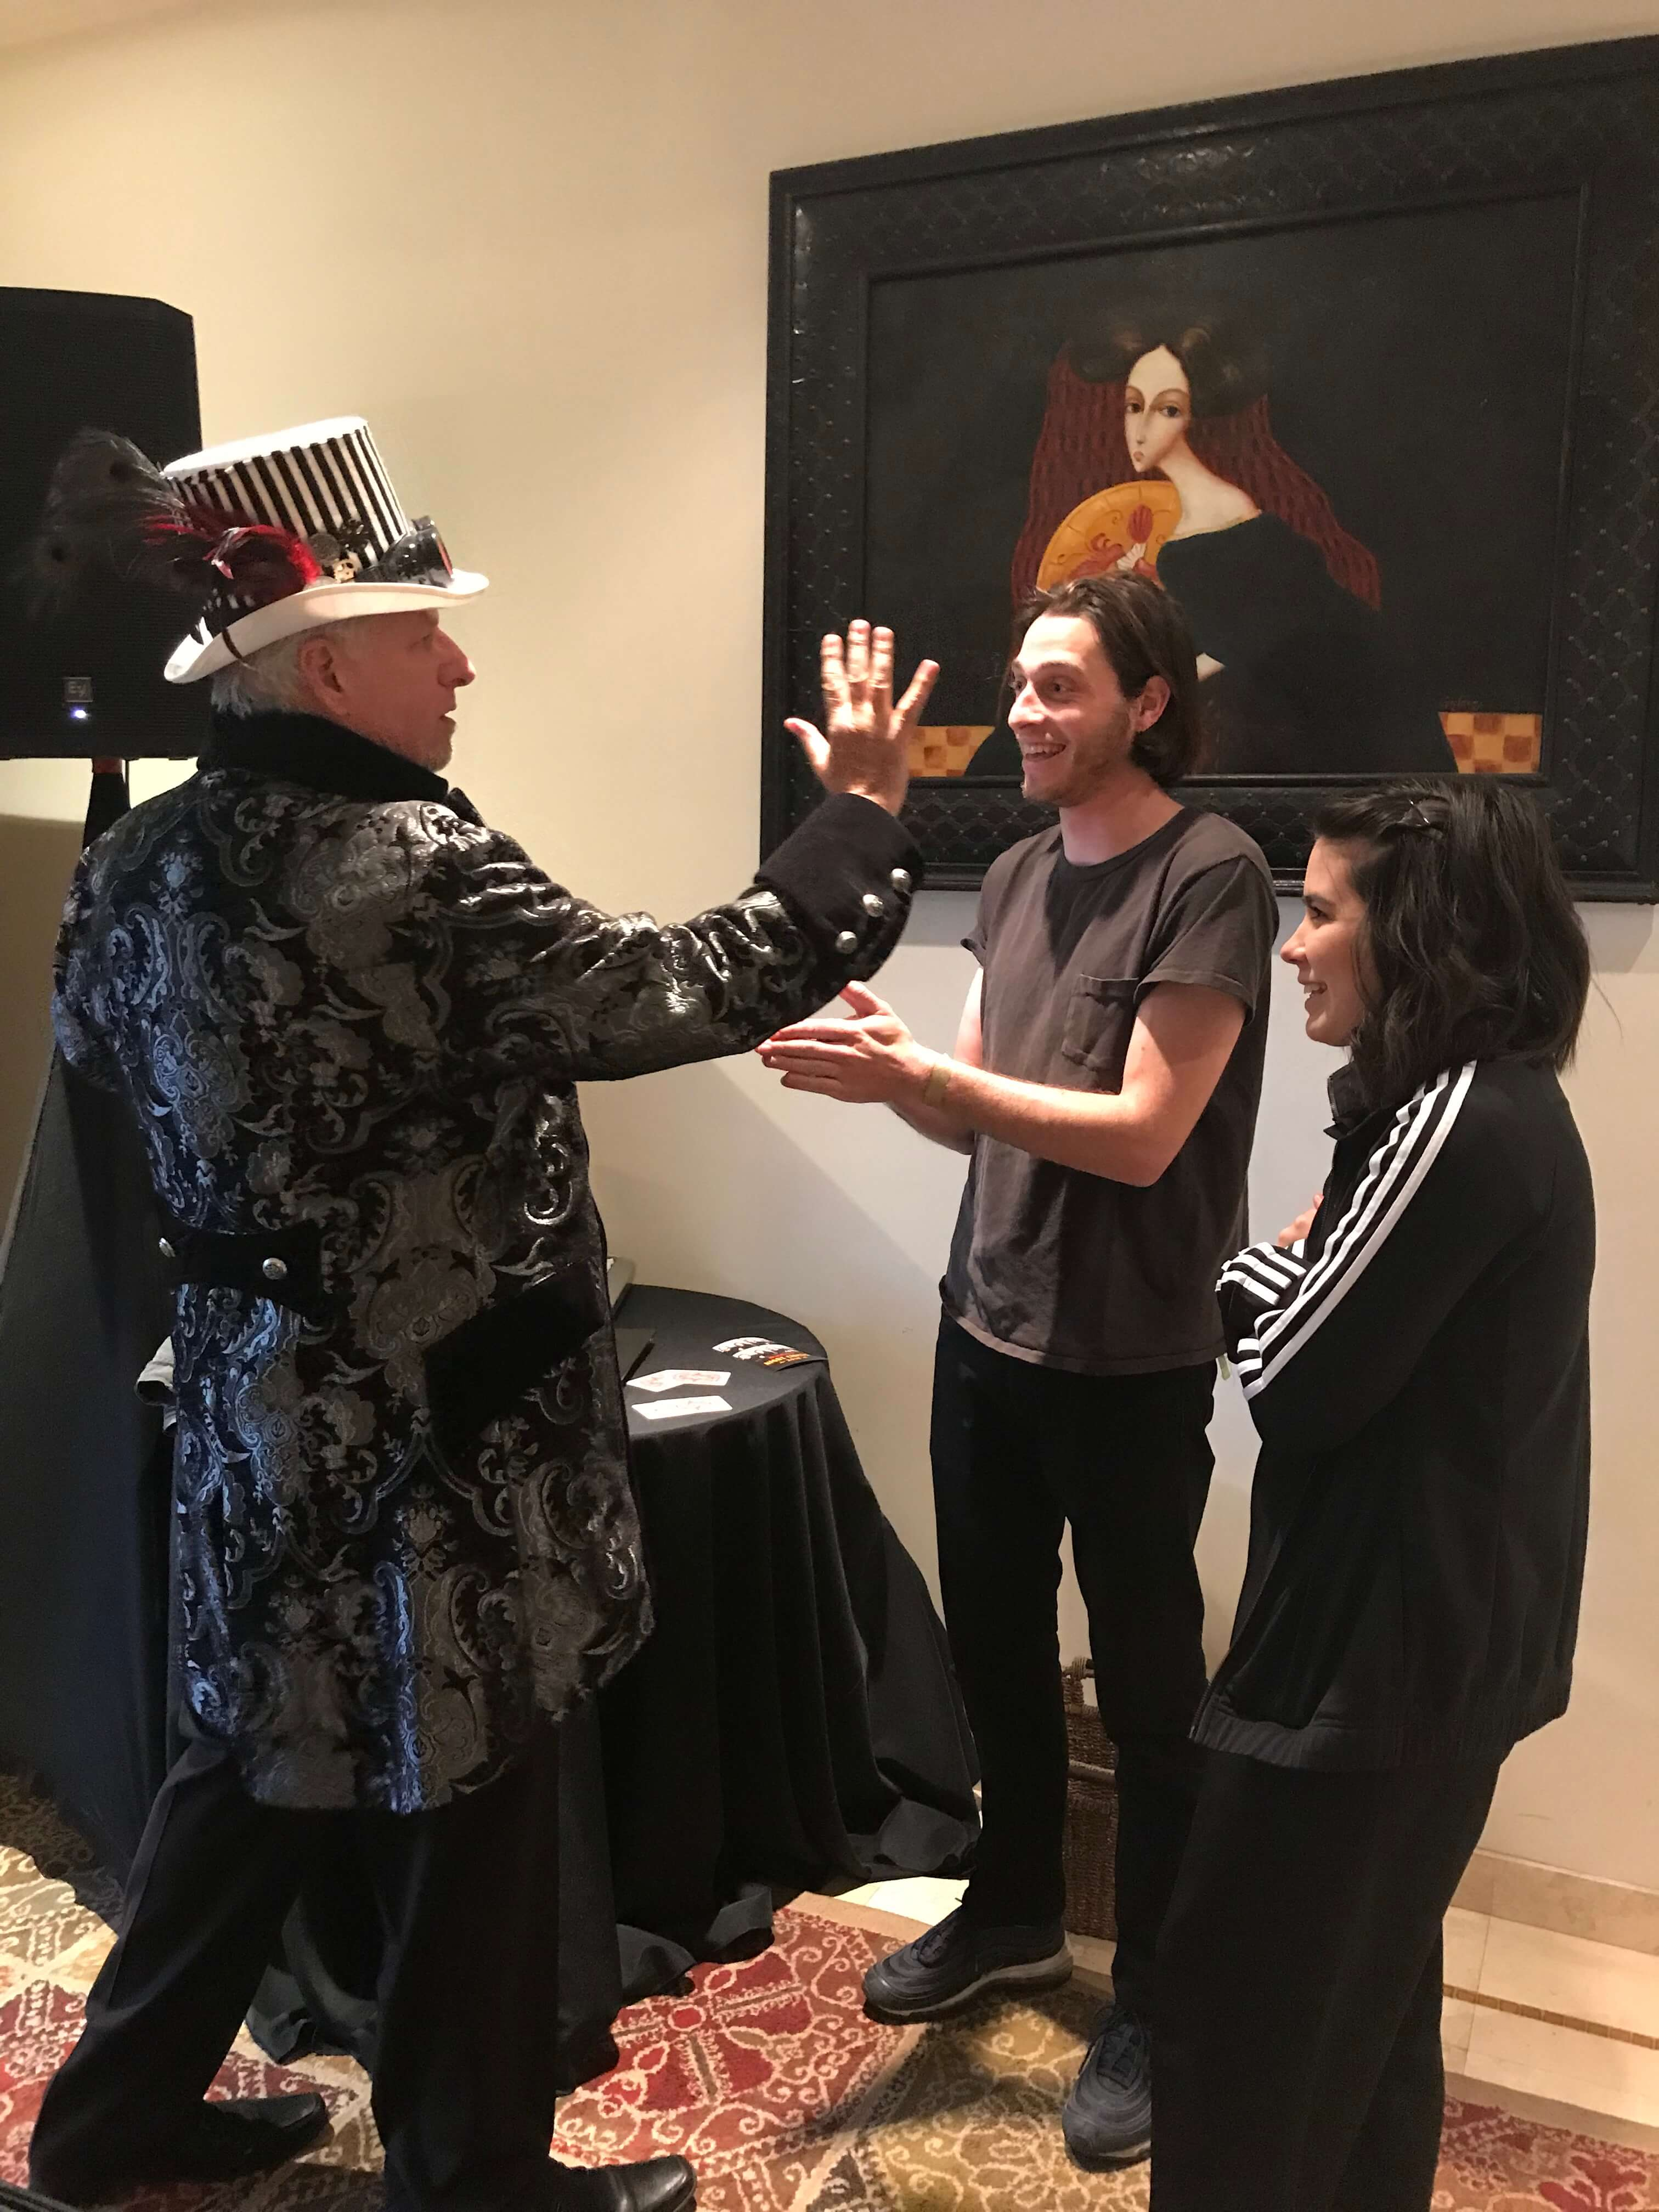 magician showing off his magic hand tricks to his two clients